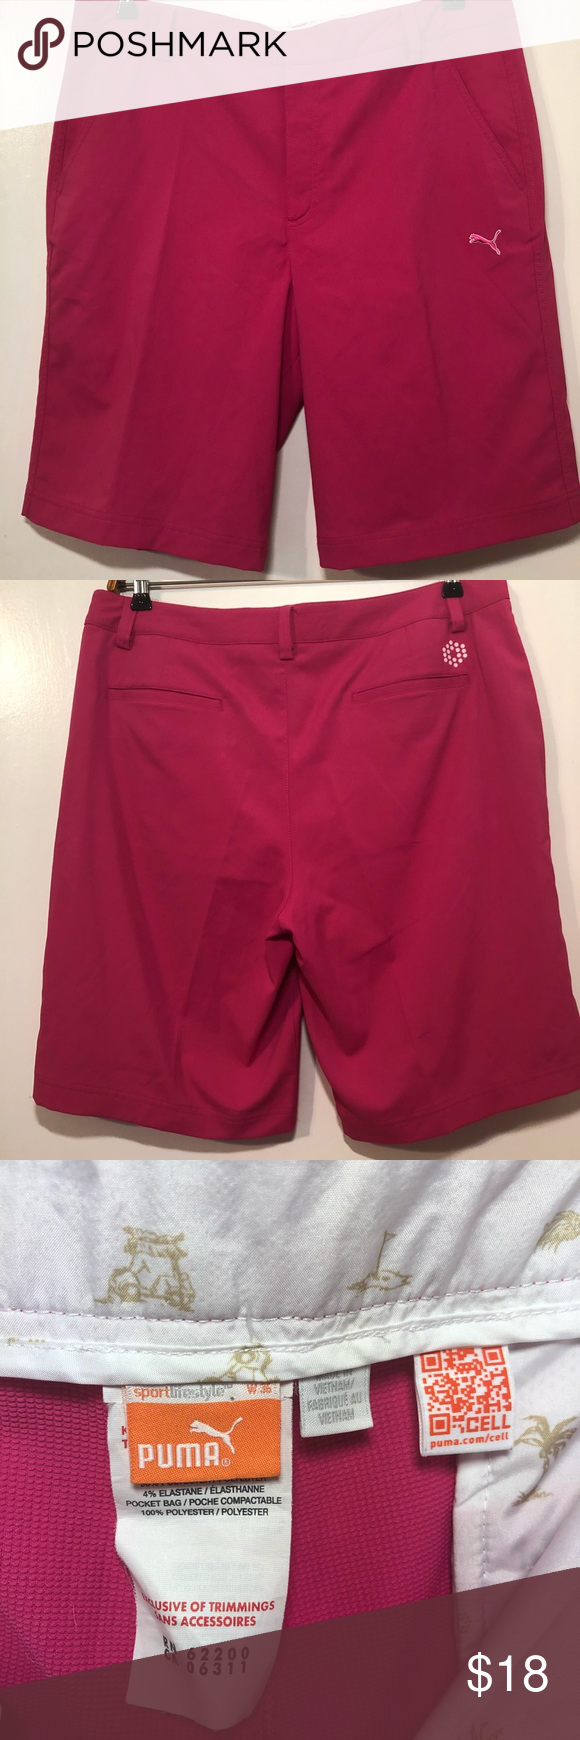 9ae1fb13291 Puma short pants in dark pink Puma bermuda sport lifestyle pants dark pink  Sz 36. Has 2 pockets on front and back with puma logo embroidered in the  front ...